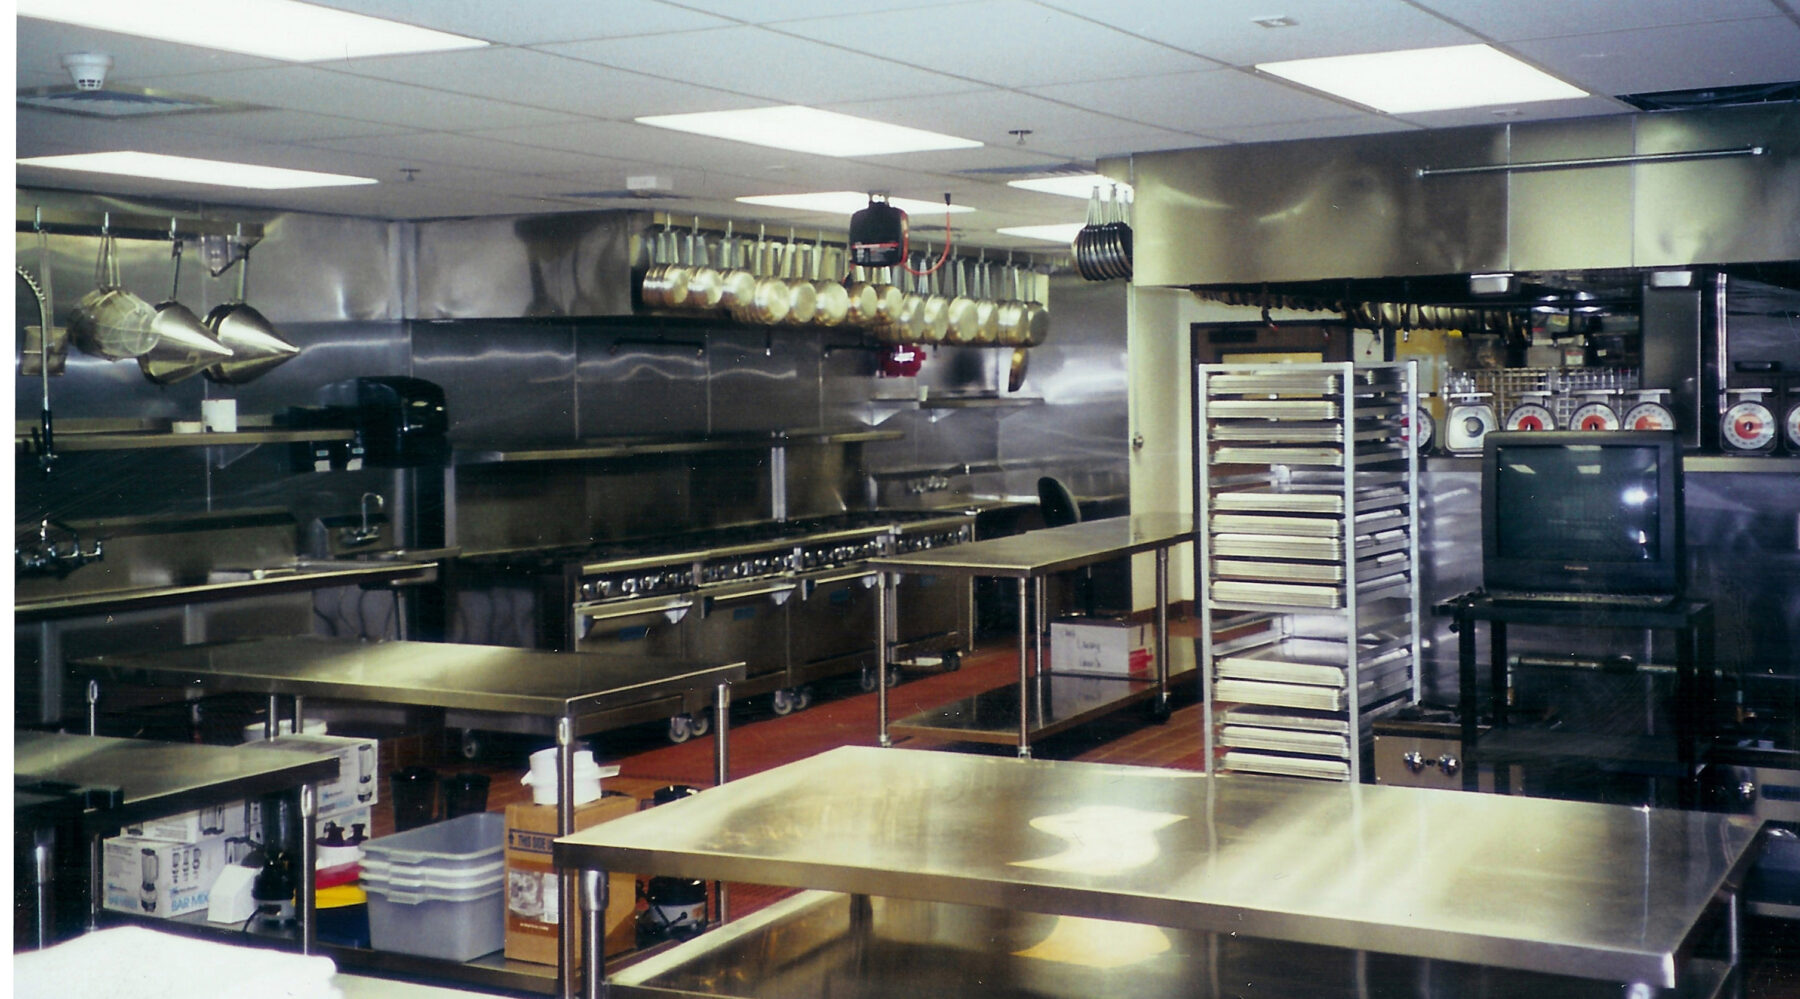 Le Cordon Bleu Culinary School working kitchen in Pasadena, Ca